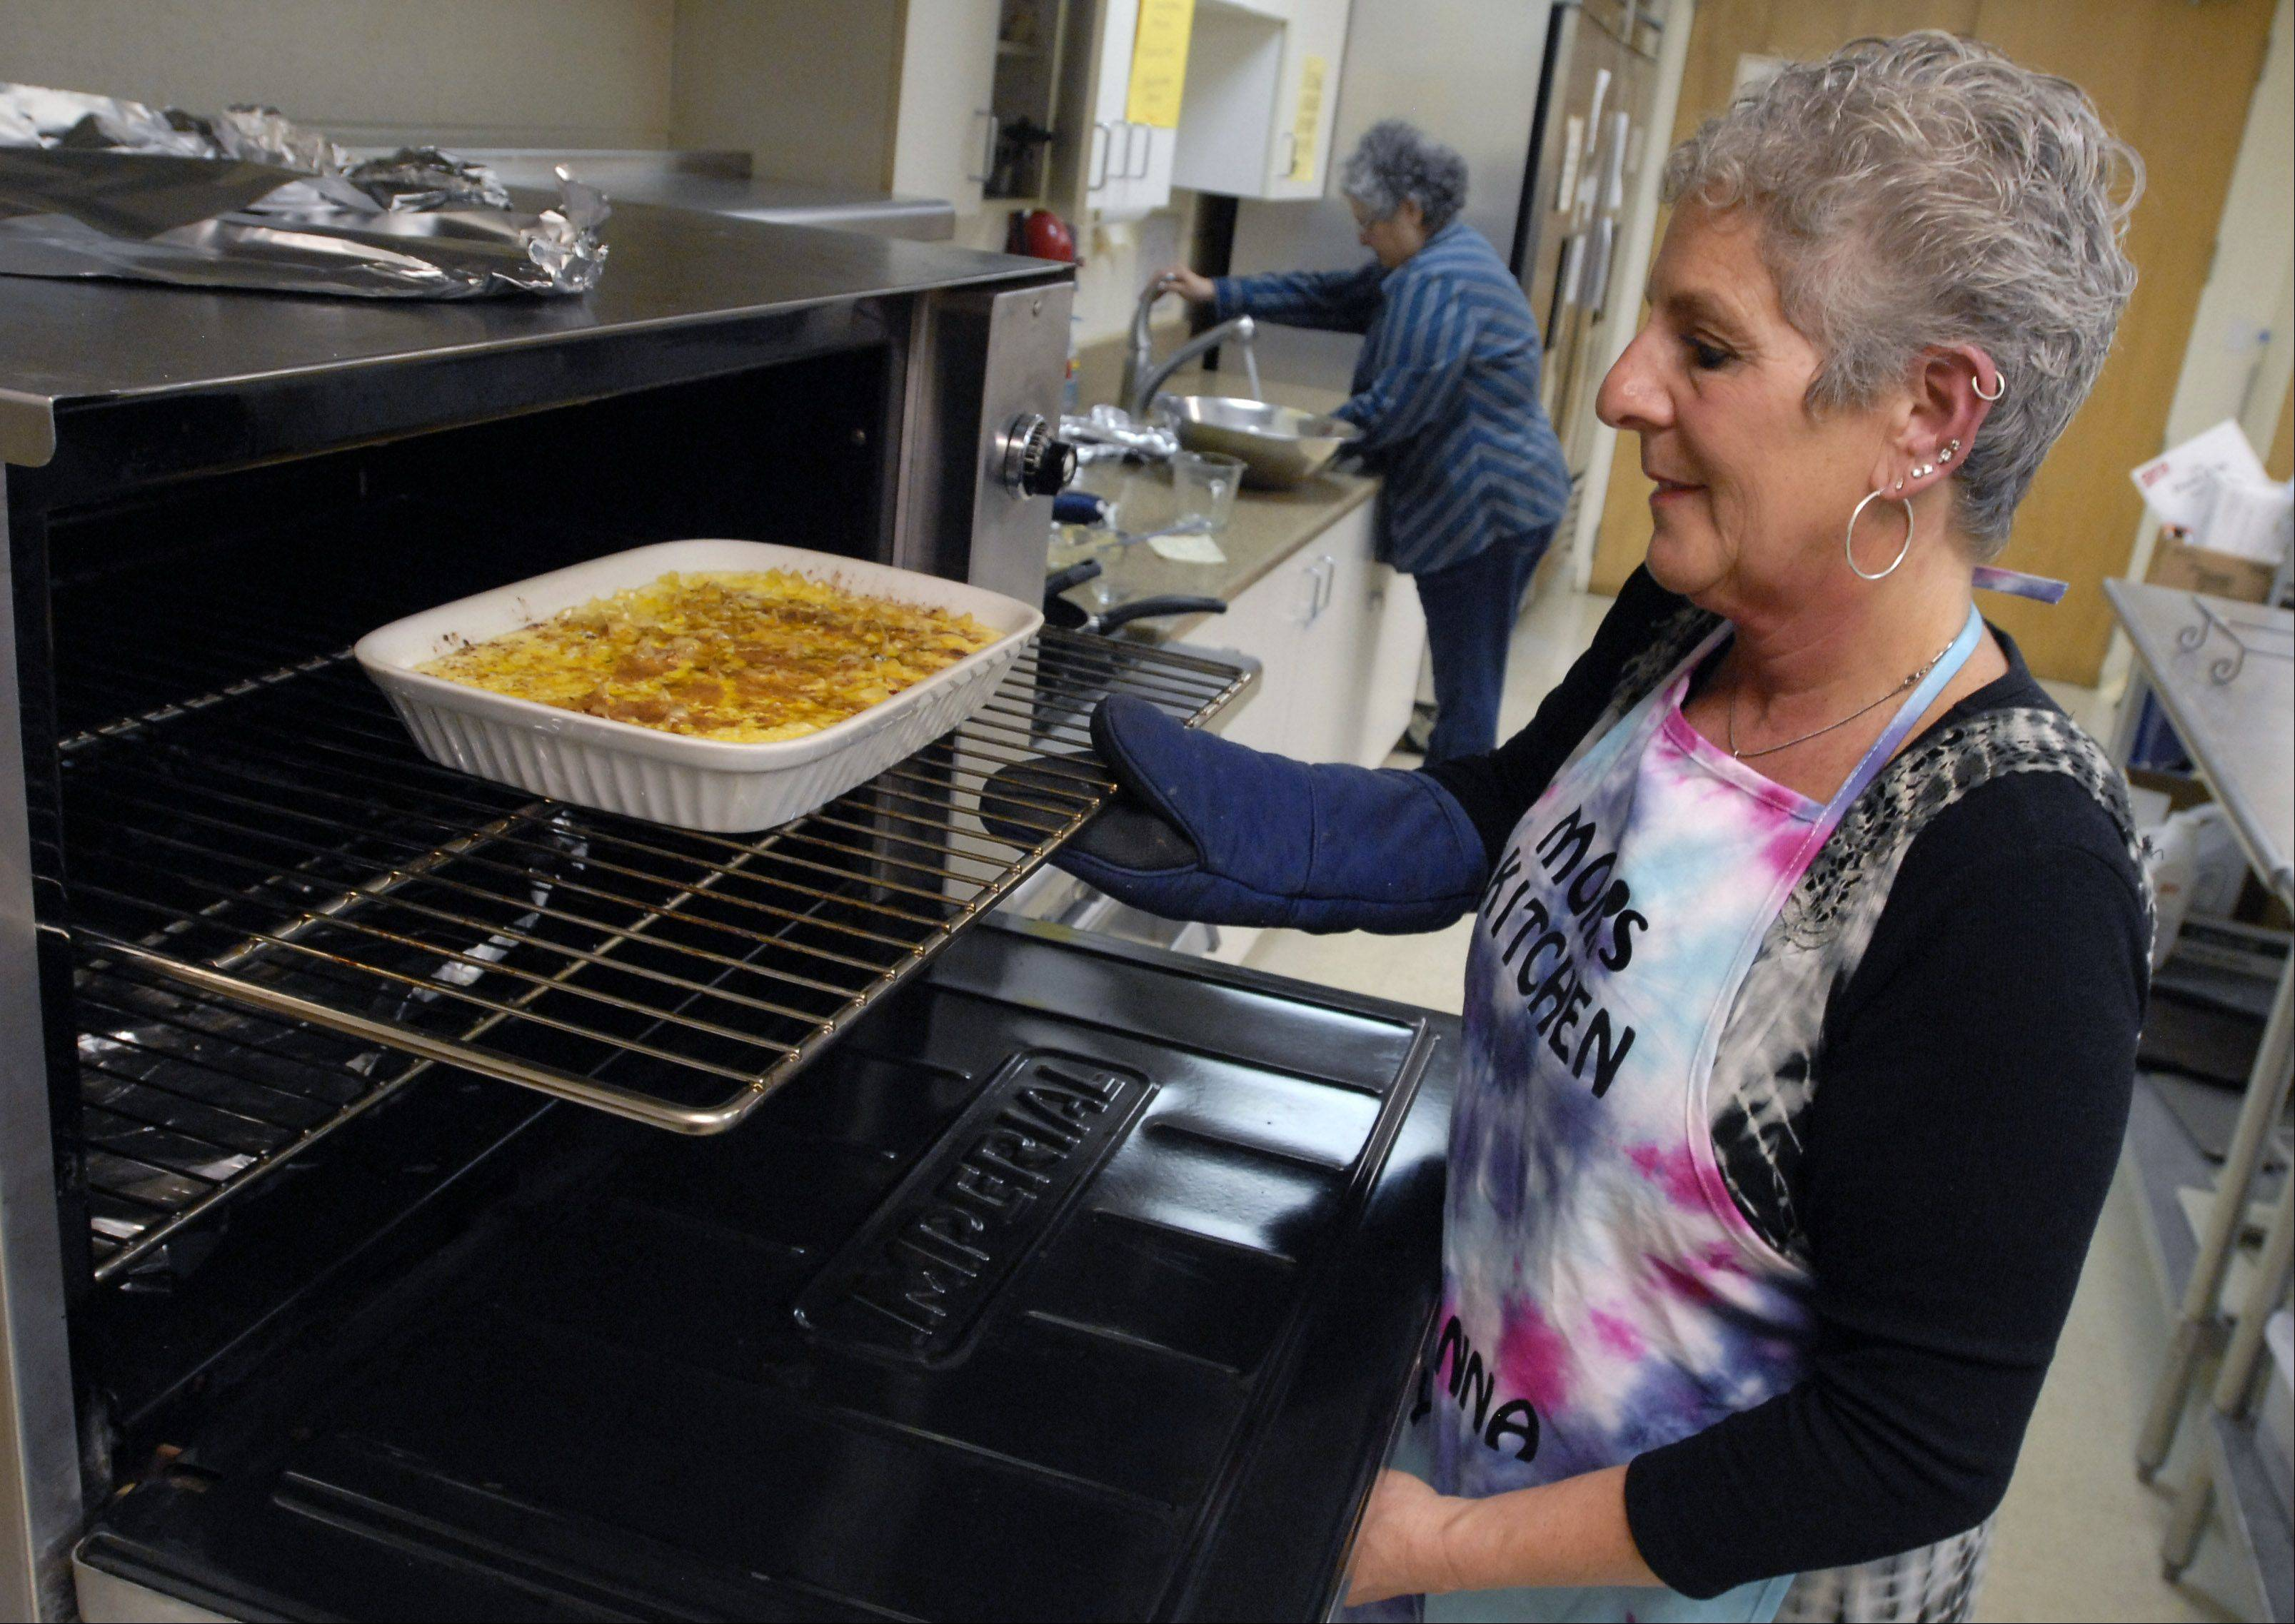 Cook of the Week Roberta Fahey puts her kugel in the oven at Beth Tikvah Early Childhood Center in Hoffman Estates where she cooks one dinner a week for students and teachers.